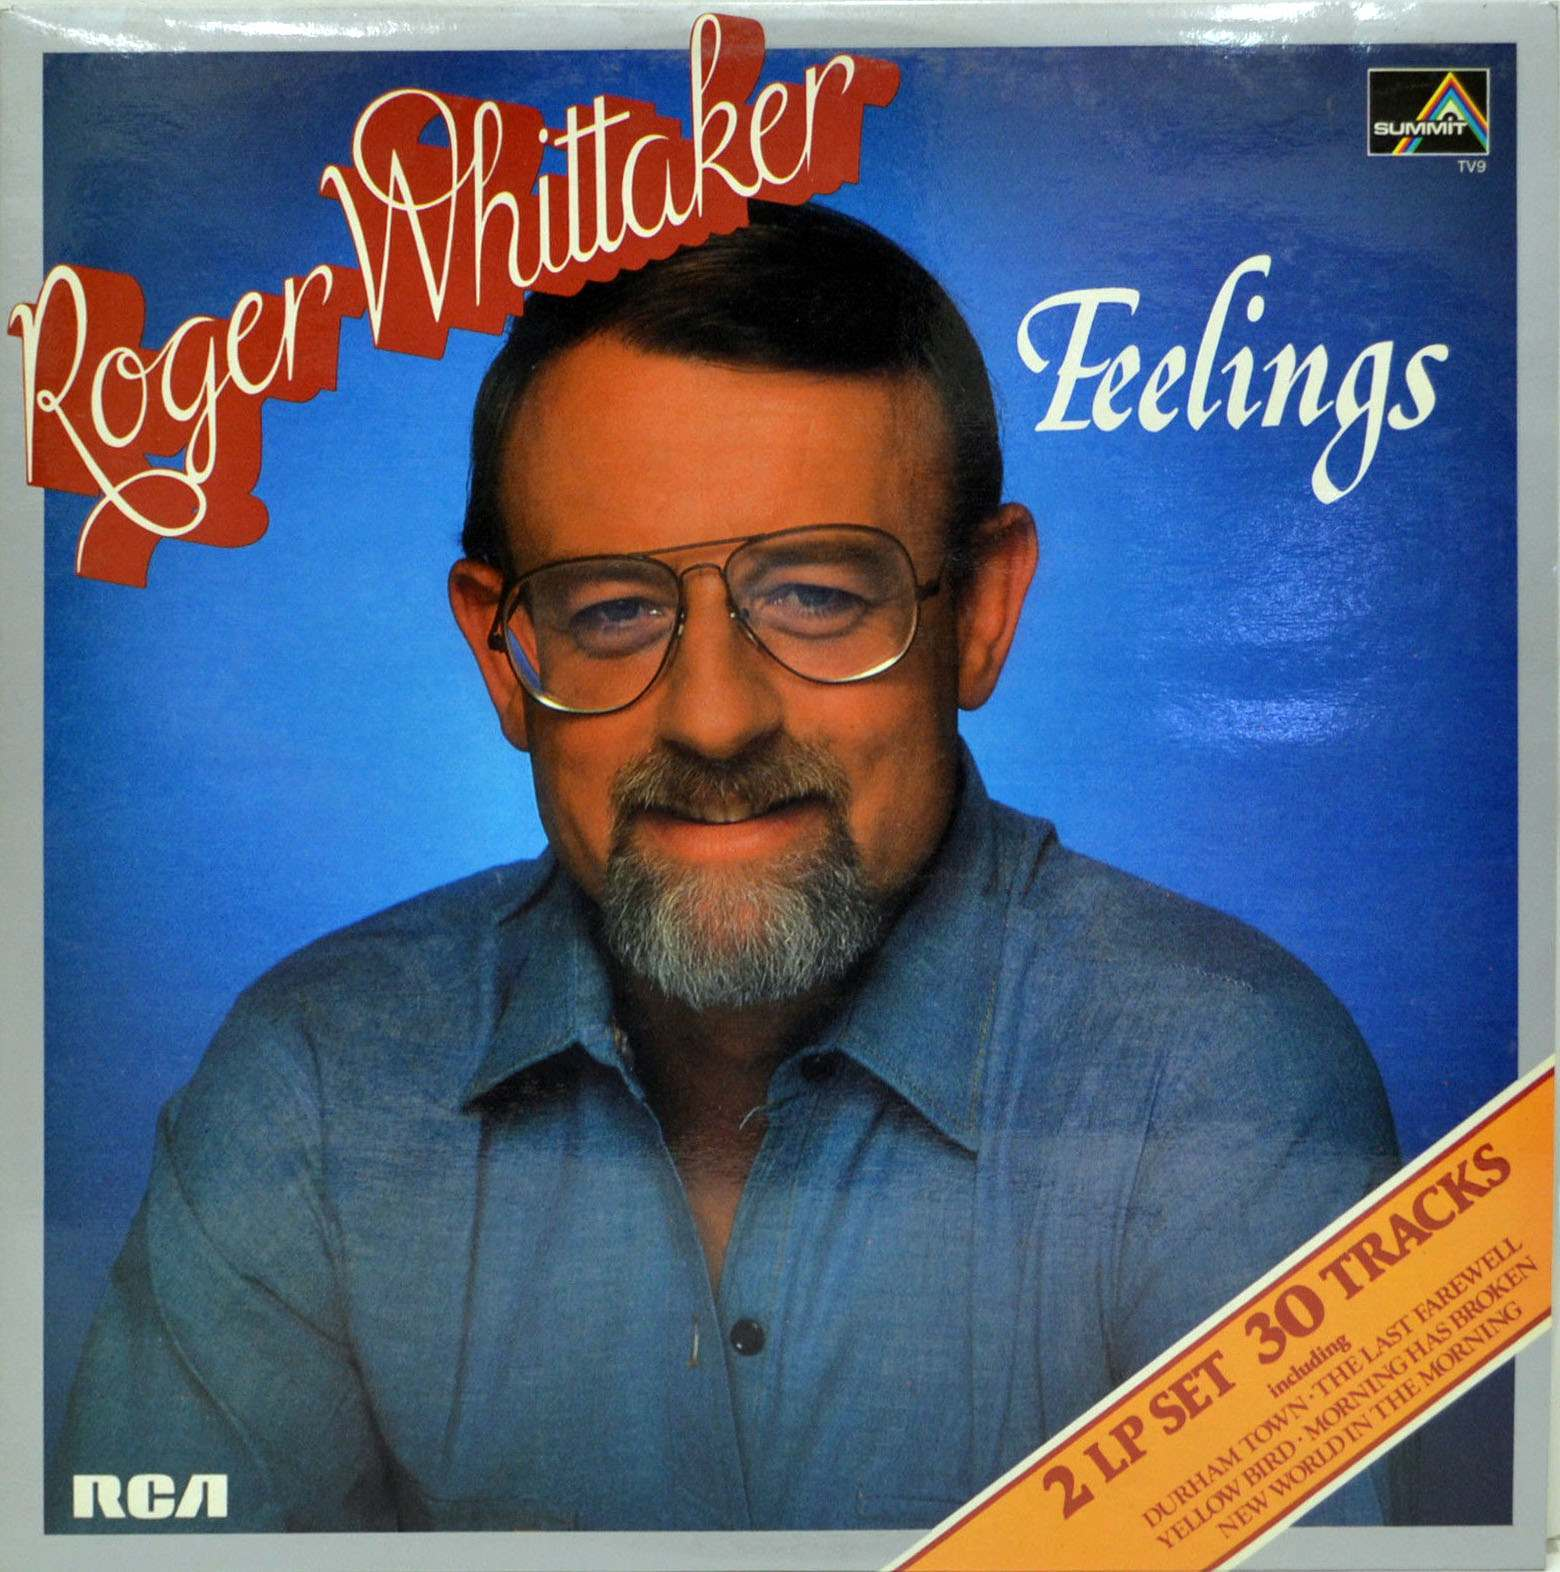 Roger Whittaker, Feelings, 1980